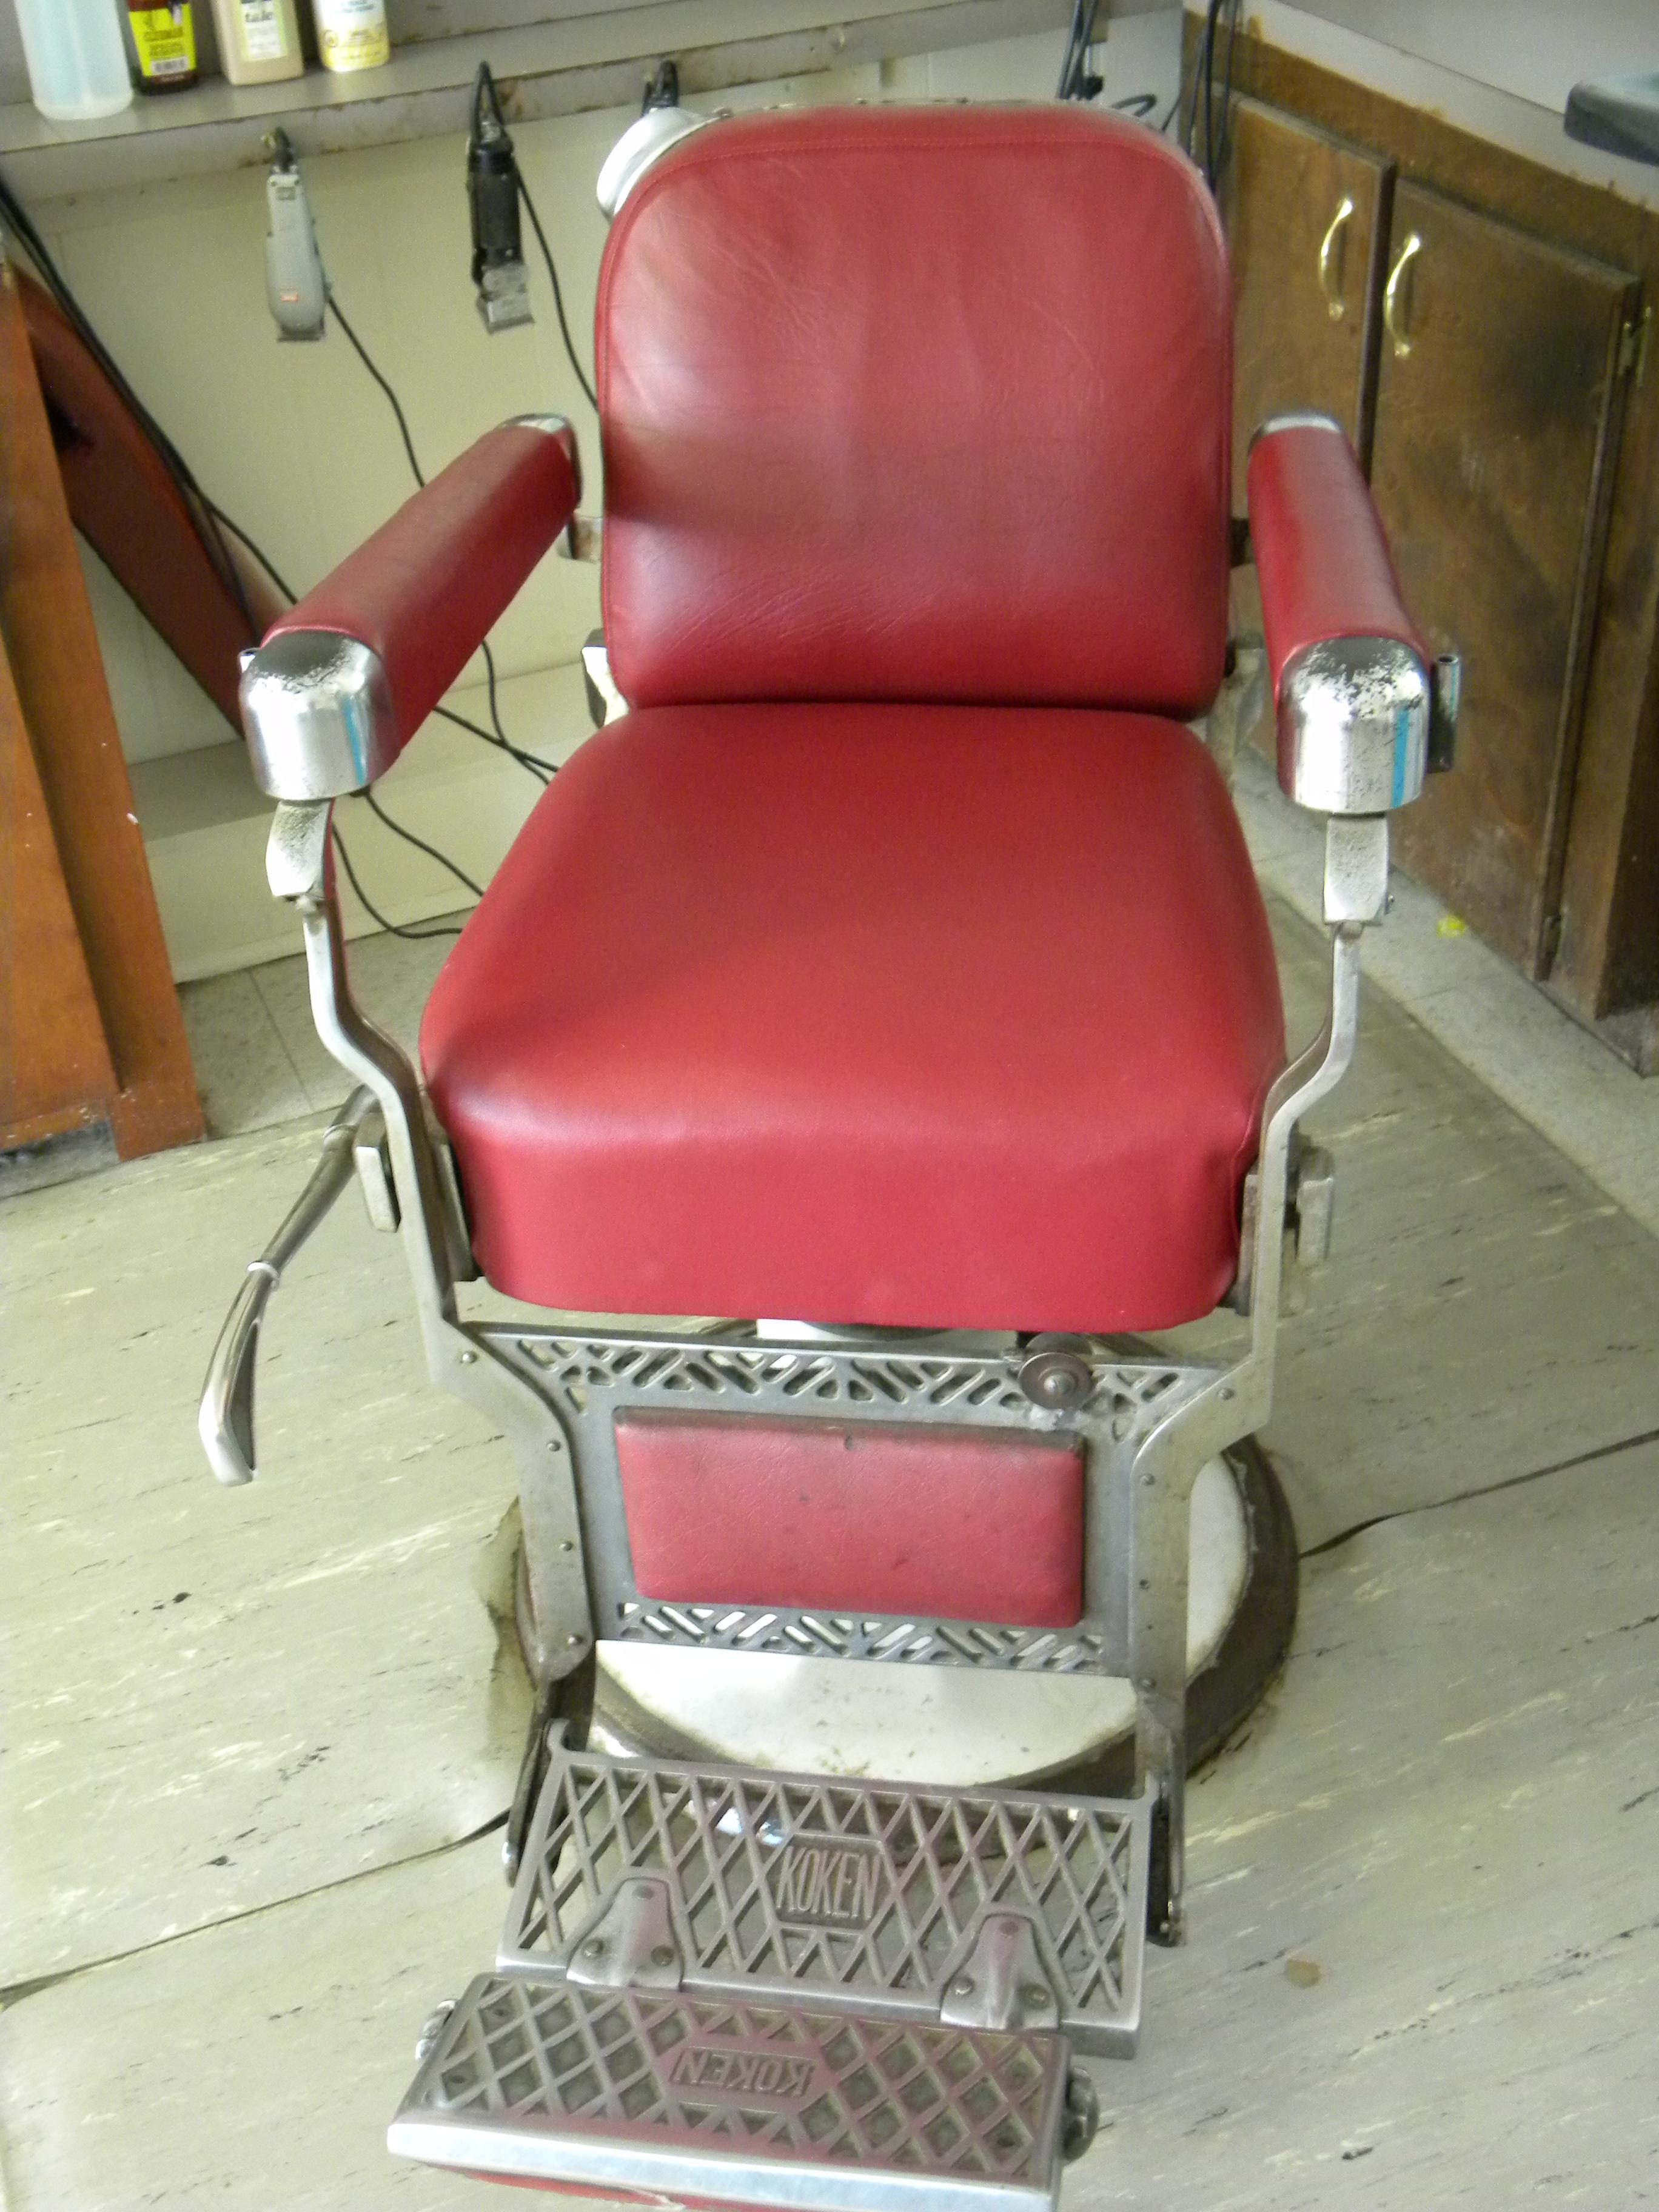 koken barber chair posture corrector desk chase i have another for which need age and